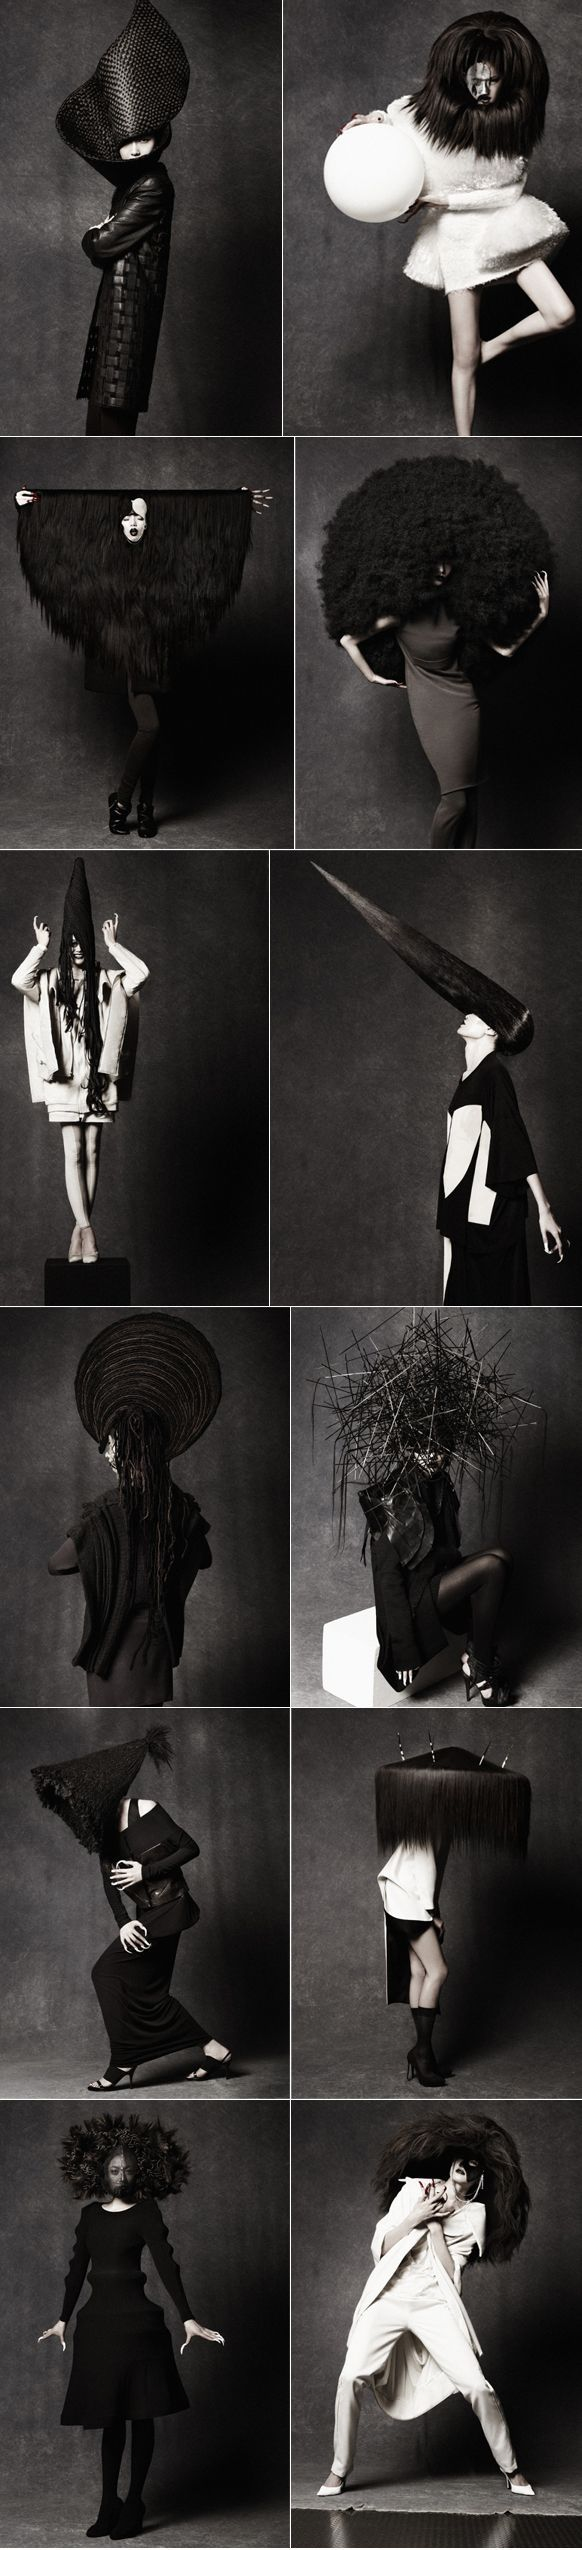 Hairstylist Peter Gray collaborates with Masa Honda. Photographed by Takahiro Ogawa.